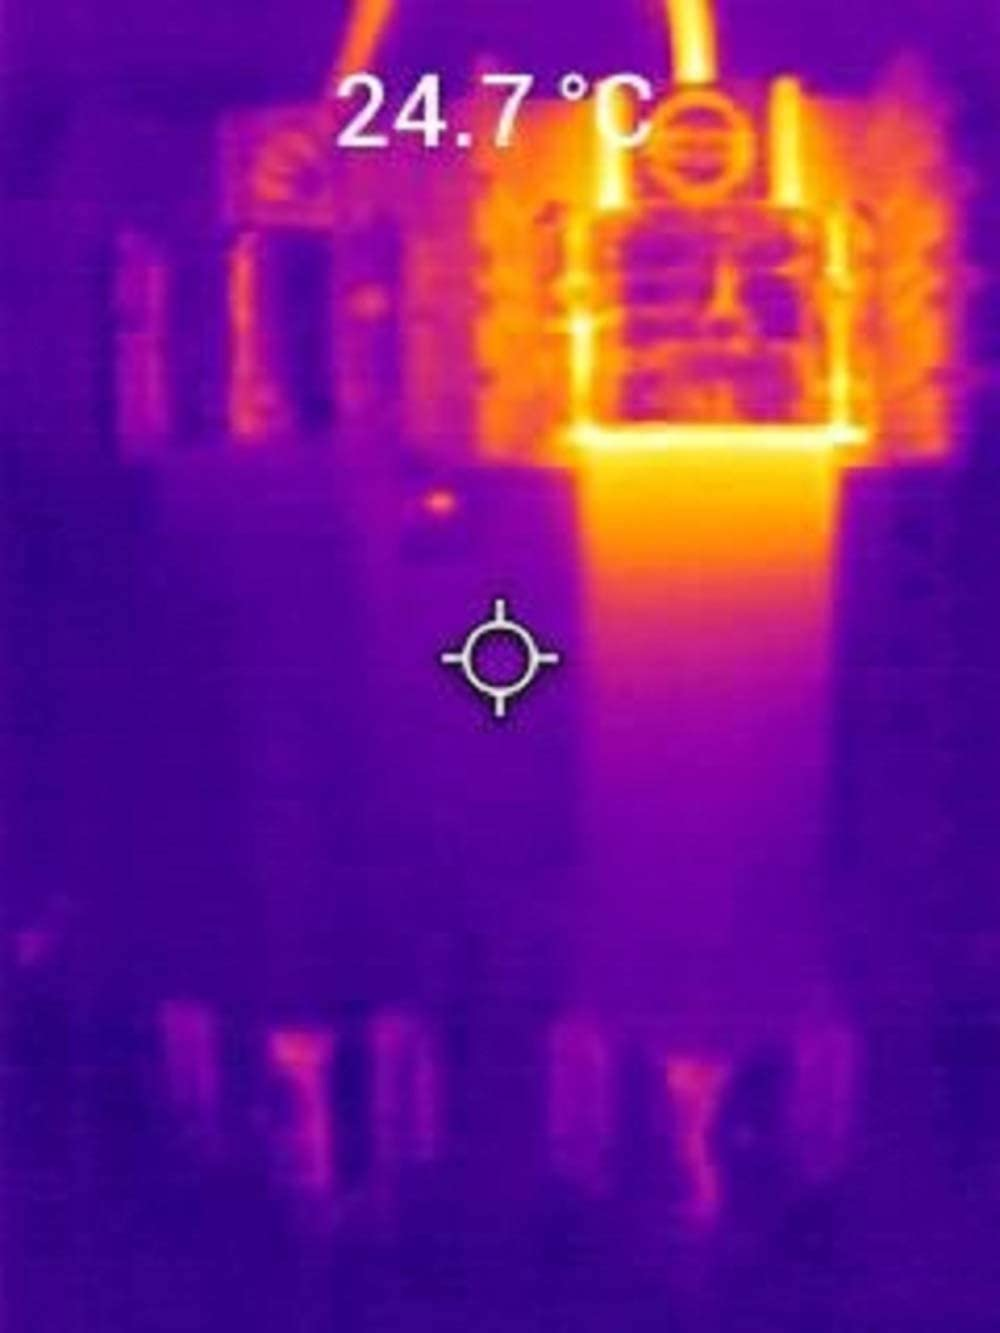 FLIR TG165-X Thermal Camera imaging tool for temperature anomalies 50,000 image storage and rechargeable Li-ion Battery with Bullseye laser